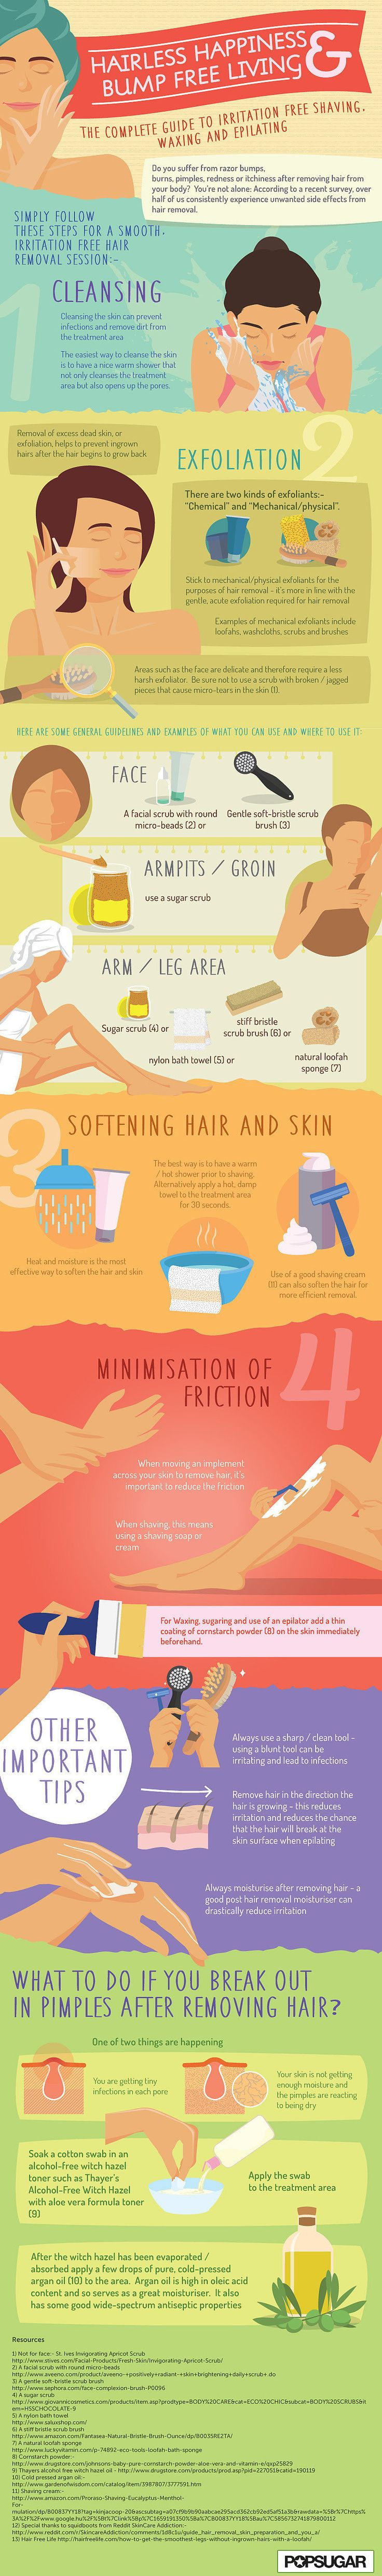 Tired of getting ingrown hairs? These beauty tips will ensure that your skin stays silky smooth and hair-free all Summer long! Keep ingrown hairs at bay with Terrene Fusions' Coffee & Himalayan Salt Skin Firming Body Scrub. Visit my site to see all of the